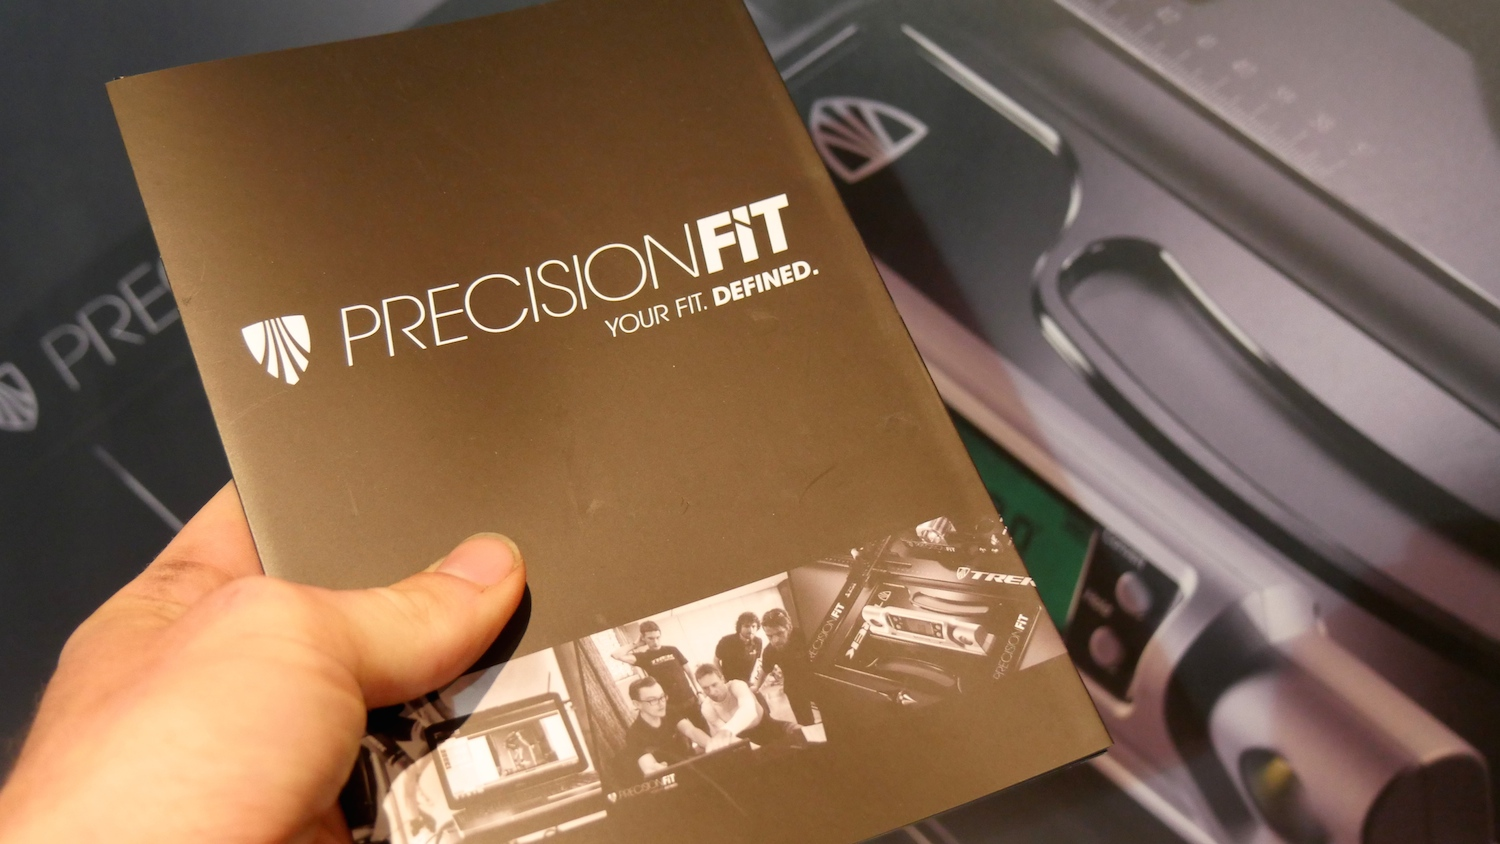 Trek Precision Fit Program